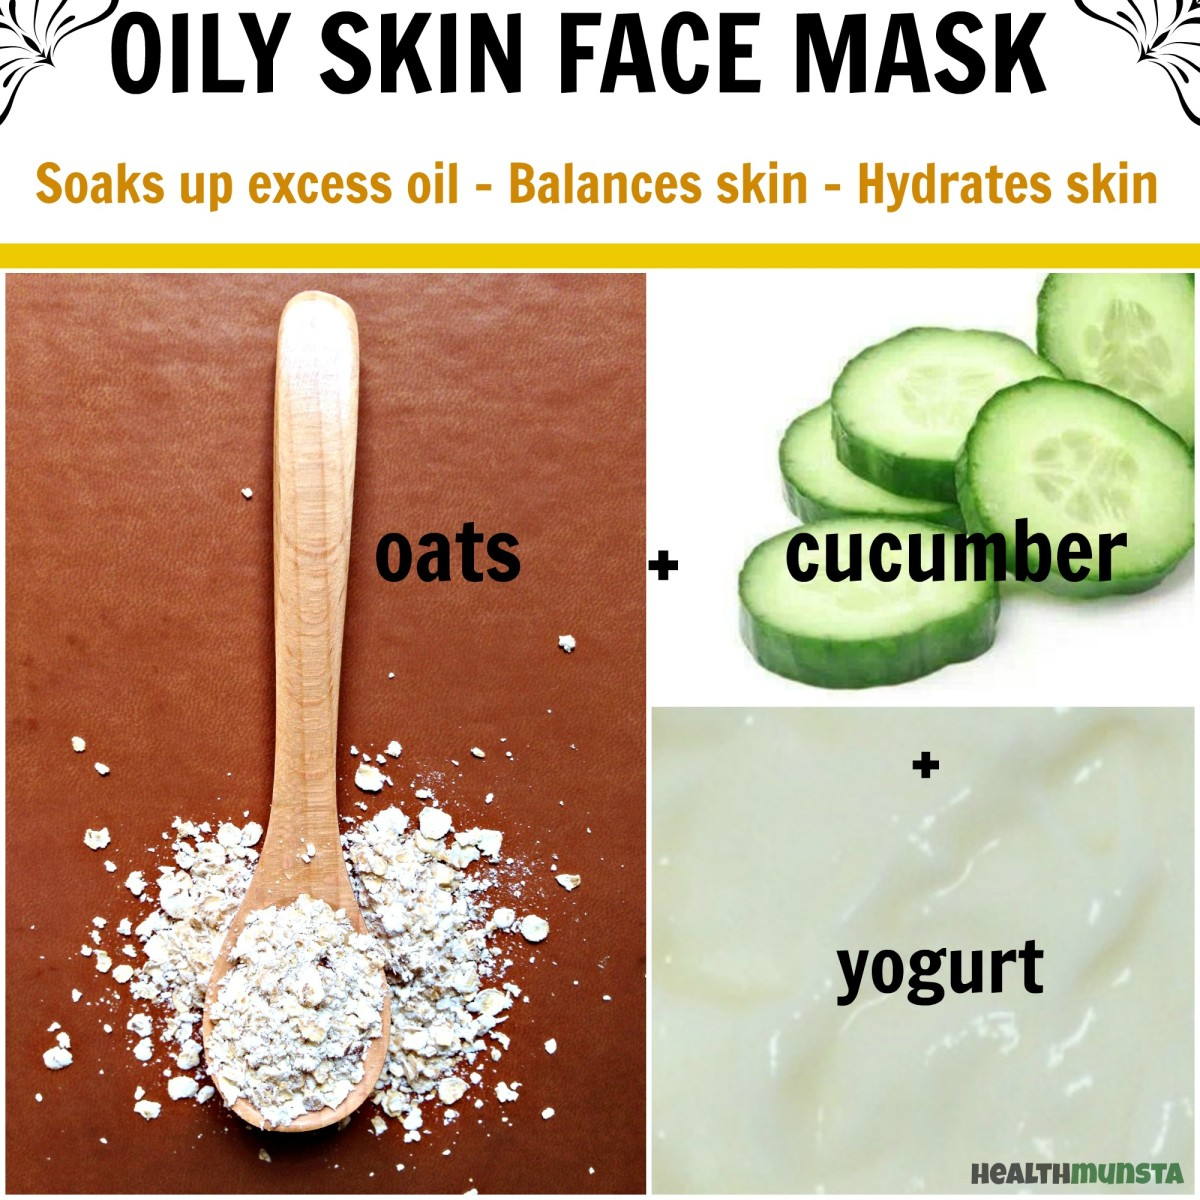 This hydrating mask is great for oily skin as it pulls out excess oils, refreshens the skin layer and rebalances the skin through the yogurt.